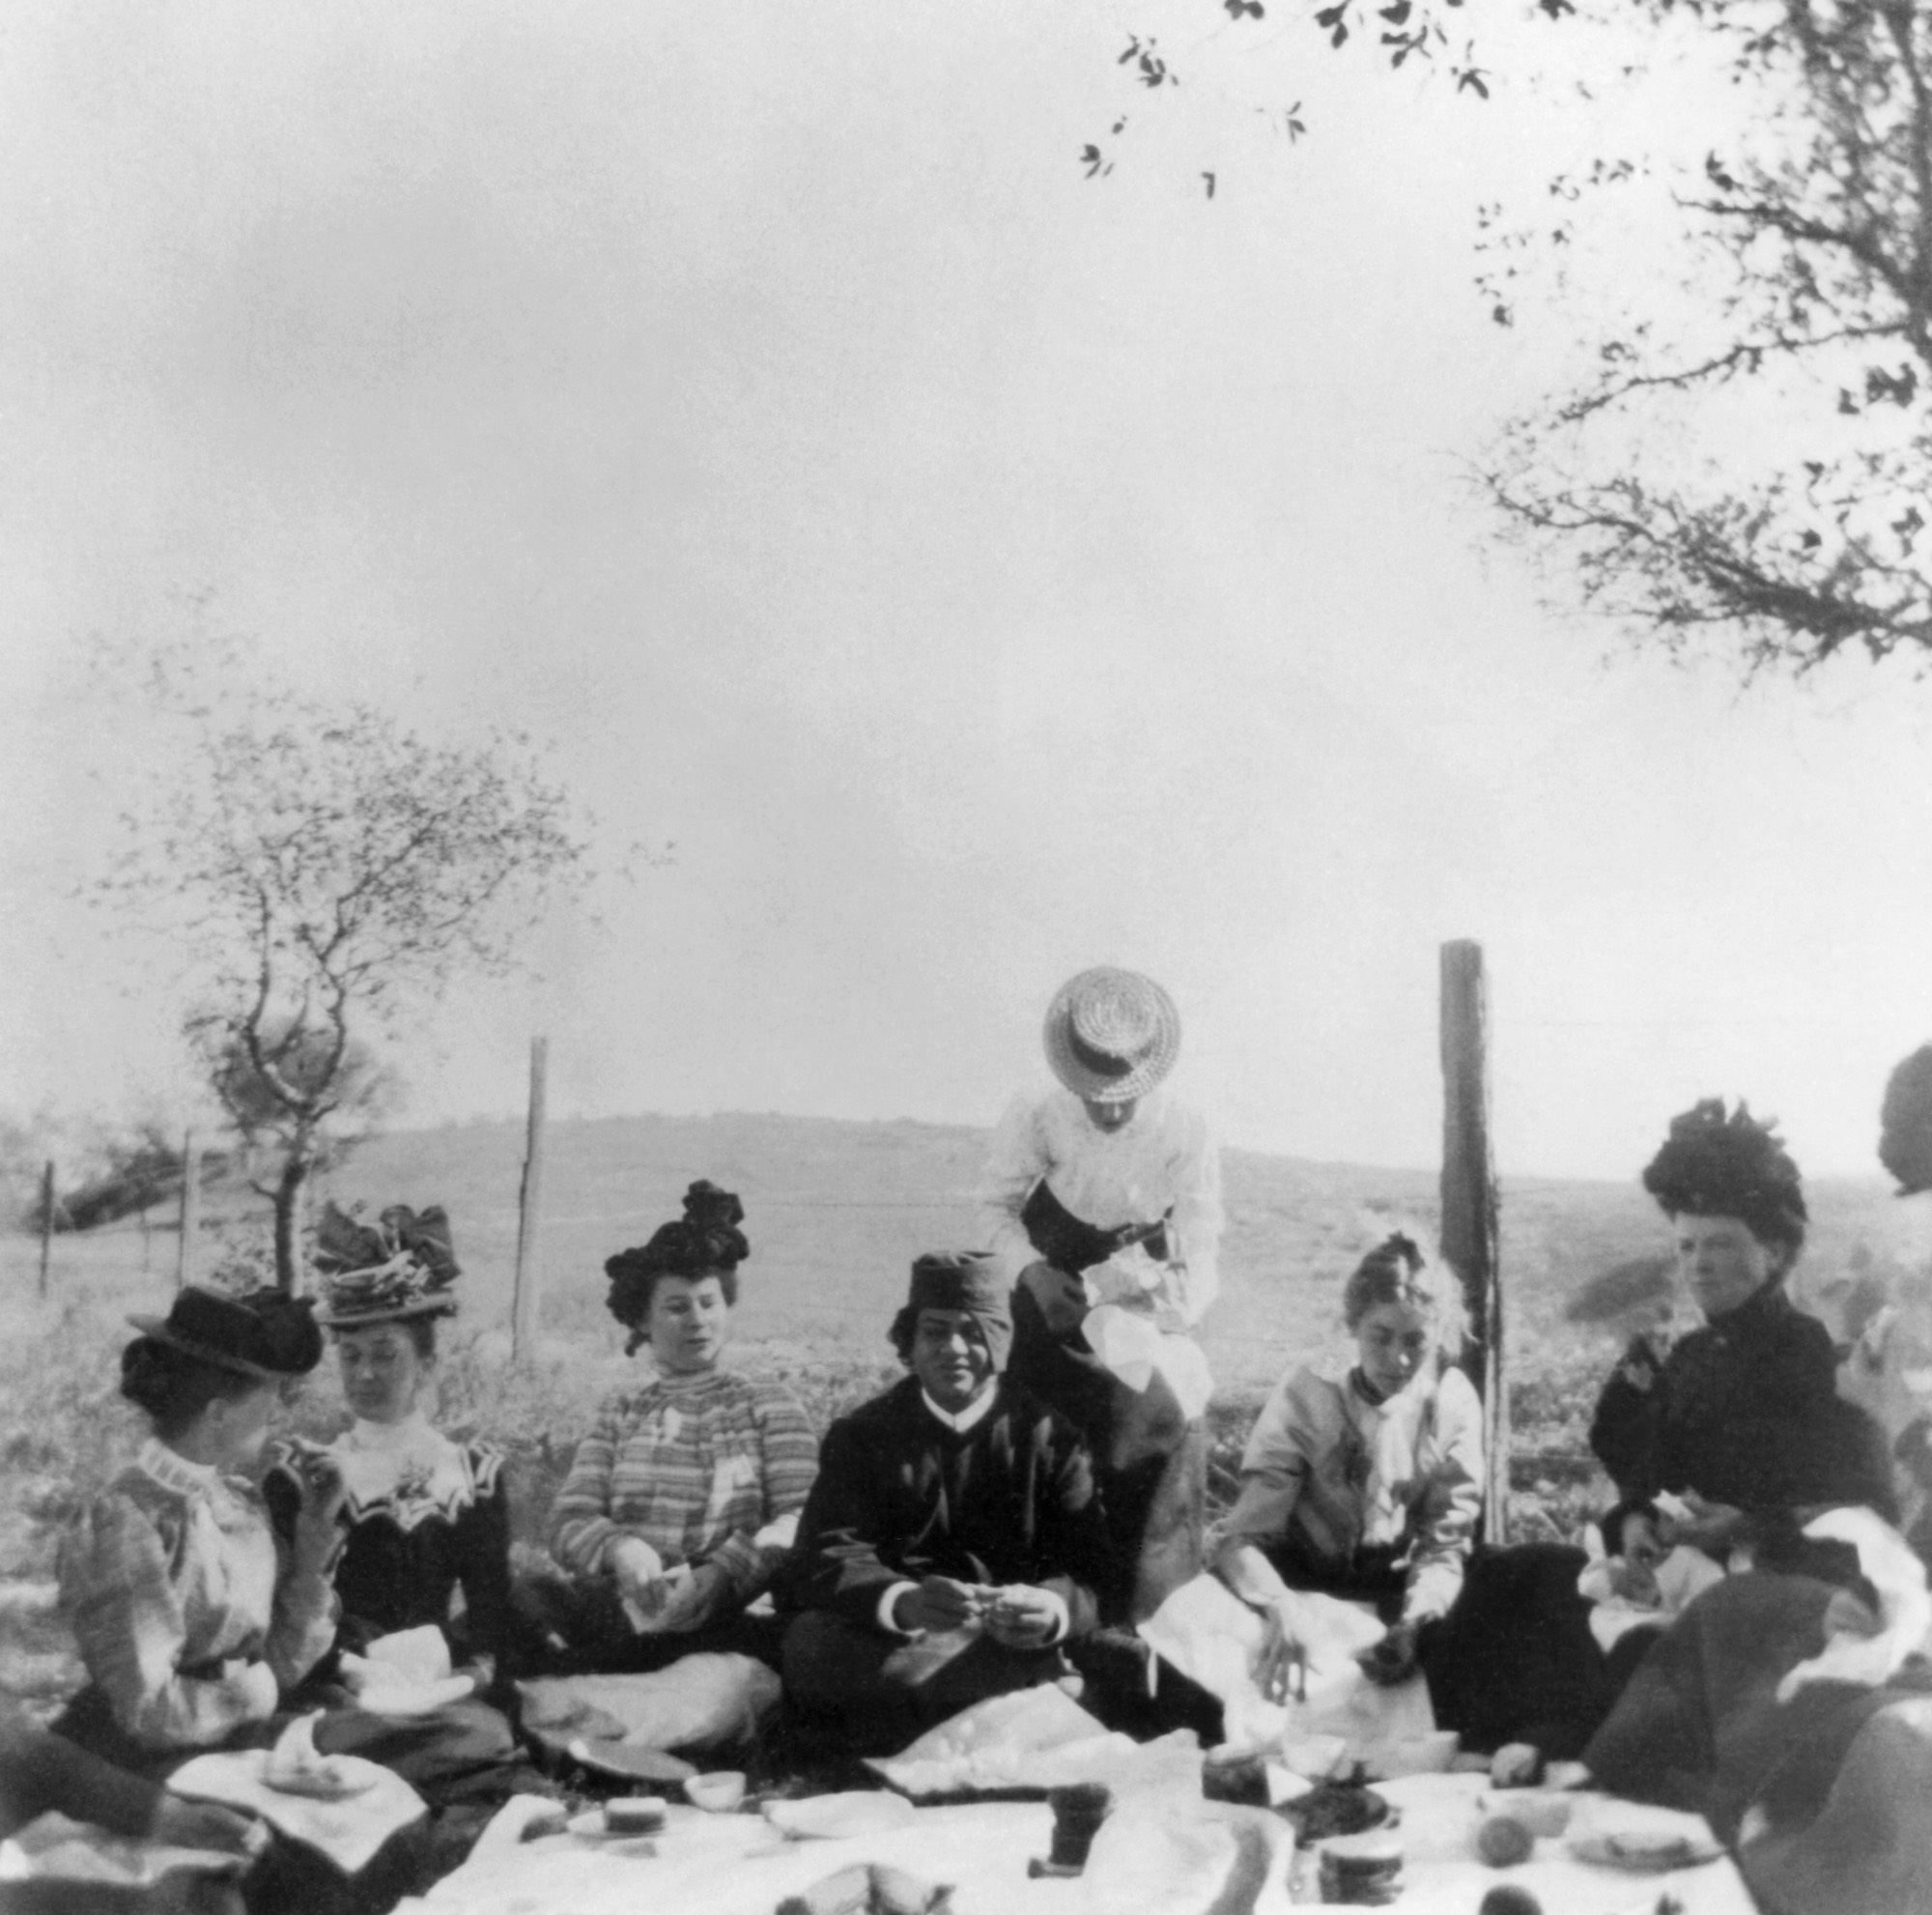 (#86) South Pasadena, California. Another picture of the picnic.